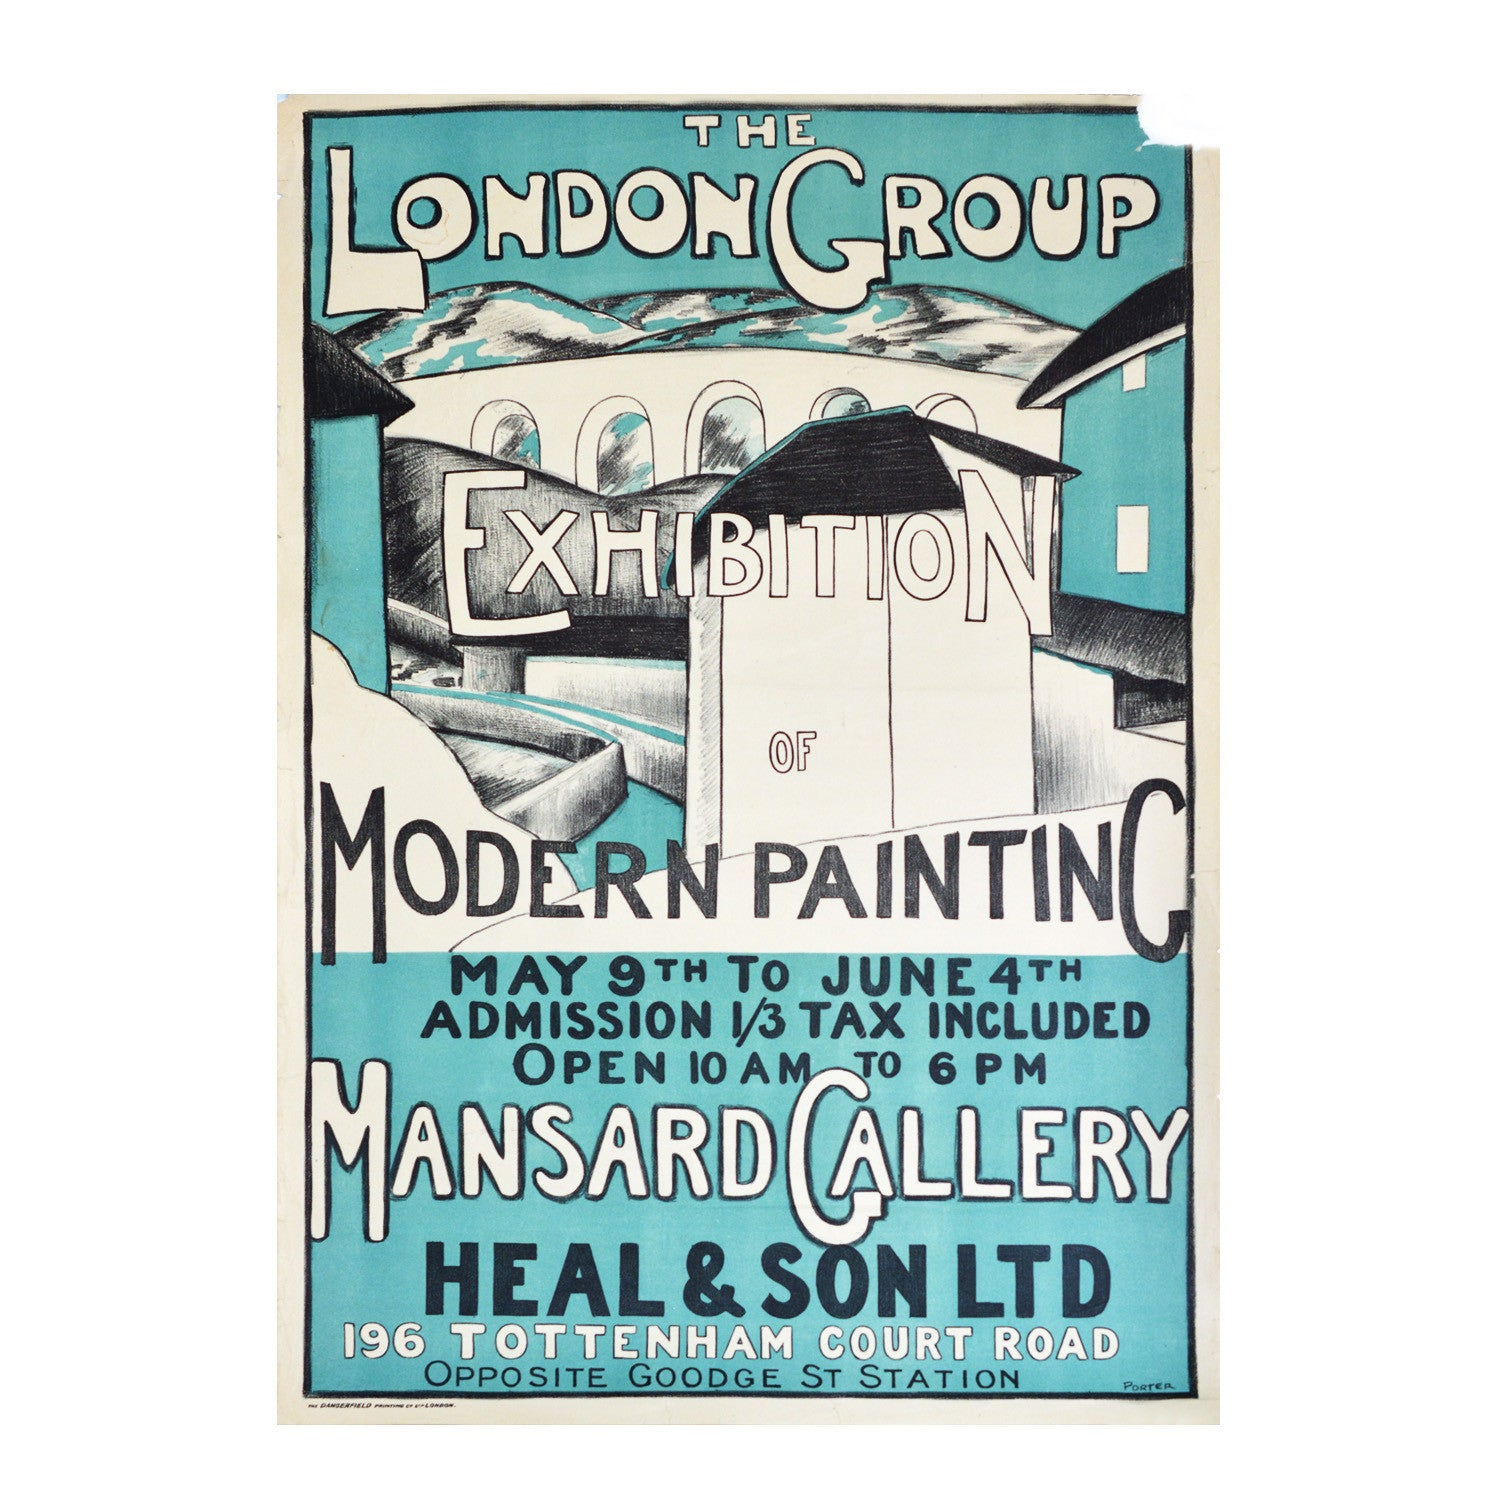 Original London Group poster. Camden Town Group. English Cubists, 1920s. Mansard Gallery poster.